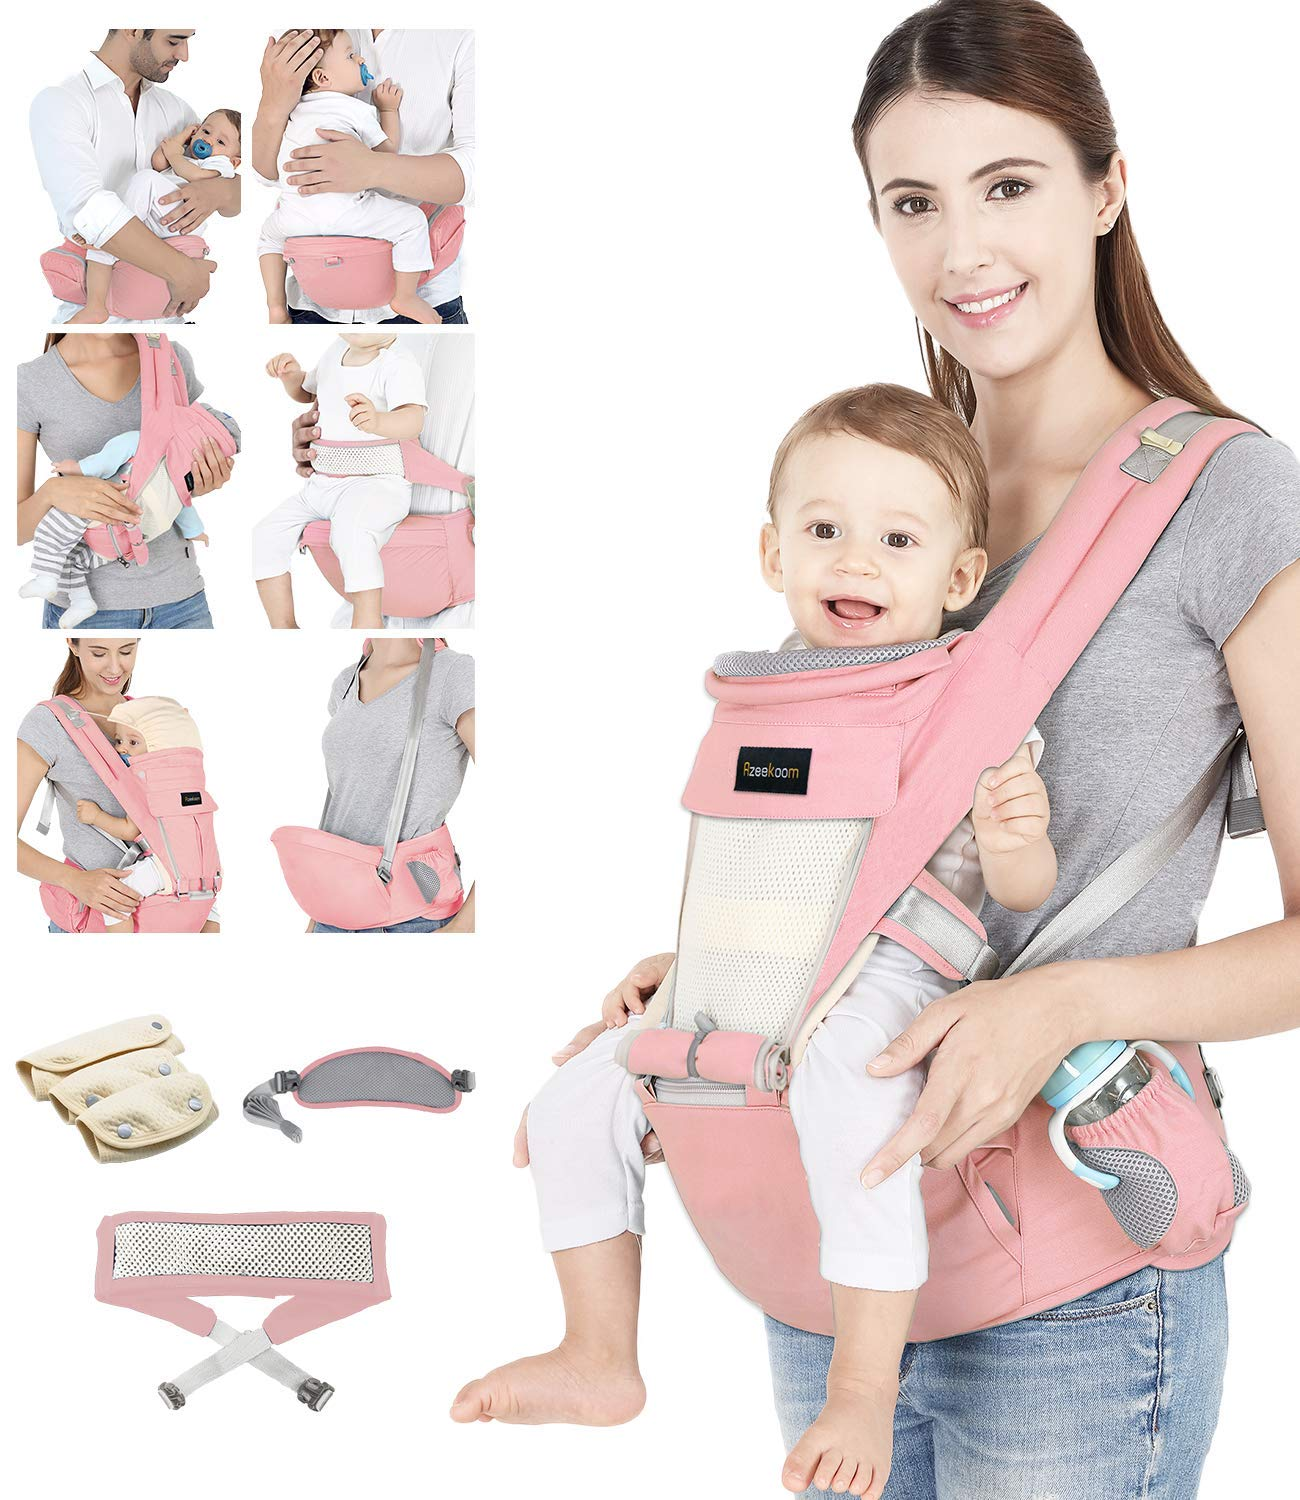 Azeekoom Baby Carrier, Ergonomic Hip Seat, Baby Carrier Sling with Fixing Strap, Bibs, Shoulder Strap, Head Hood for Newborn to Toddler from 0-36 Month (Pink) Azeekoom 【More Ergonomic】 - Baby carrier for newborn has an enlarged arc stool to better support the baby's thighs, the M design that allows the knees to be higher than the buttocks when your baby sits, is more ergonomic.The silicone granules on the stool provide a high-quality anti-slip effect that prevents the baby from slipping off the stool. 【Various Methods of Carrying】- There are 5 combinations of ergonomic baby carrier and a variety of ways to wear them.Hip Seat/Fixing Strap + Hip Seat/Shoulder Strap + Hip Seat/Strap + Hip Seat/Strap, 5 combinations to meet your needs.Fixing Strap frees your hands and prevent your baby from falling over the stool.The shoulder straps reduce the burden on your waist and make you more comfortable. 【More Comfortable】 - The baby carrier is made of high quality cotton fabric with 3D breathable mesh for comfort and coolness. The detachable sunshade provides warmth in winter and fresh in summer. The detachable cotton slobber allows you to Easy to change. At the same time, the zip closure is designed for easy removal and cleaning. 1